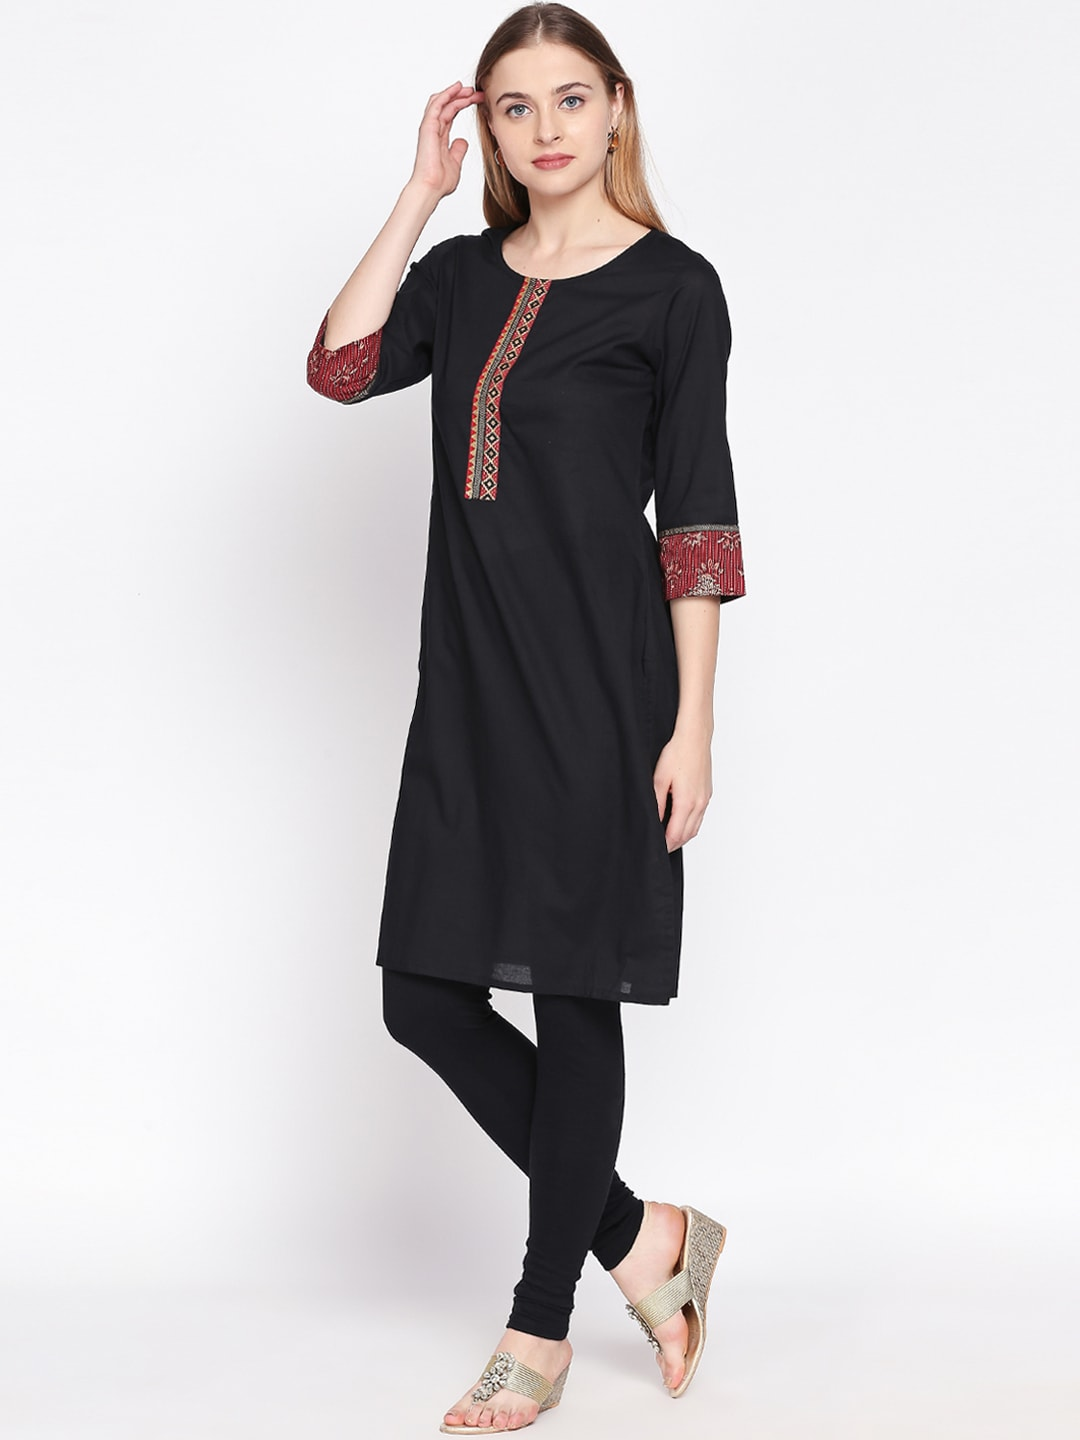 RANGMANCH BY PANTALOONS Women Black Solid Straight Kurta